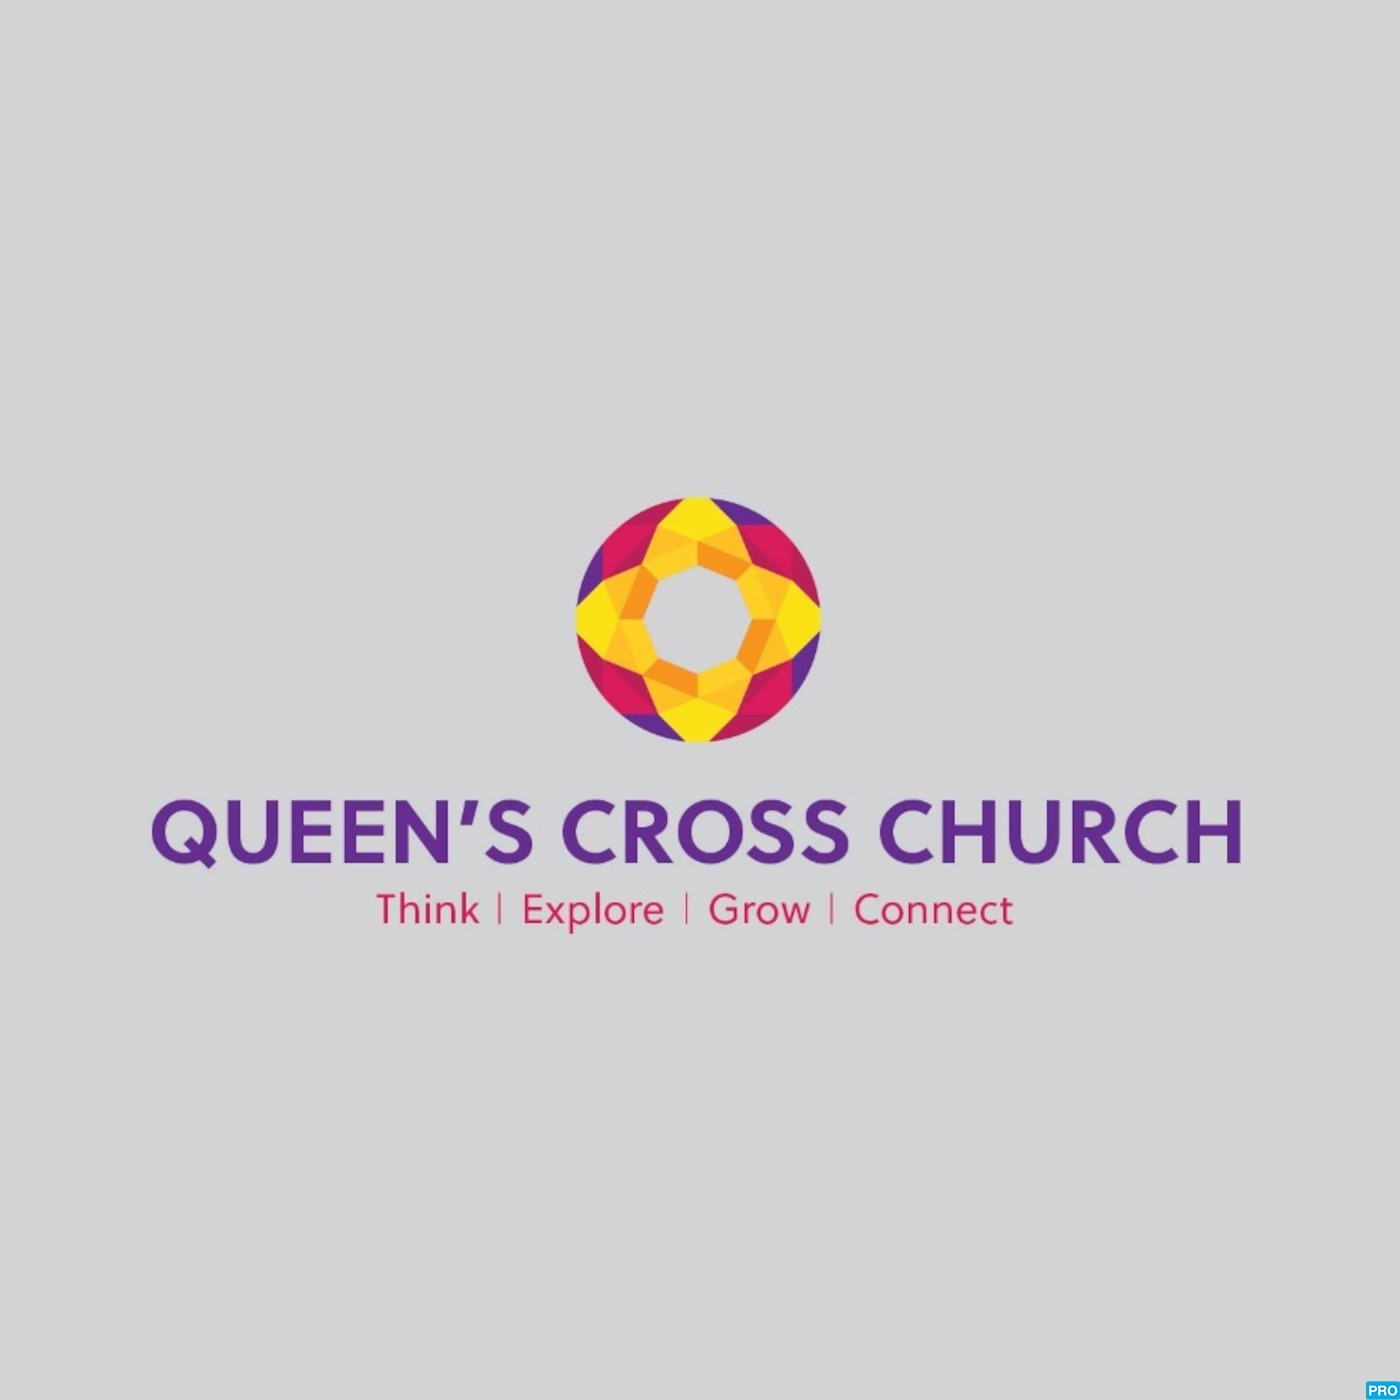 Queen's Cross Church's Podcast: Open, Inclusive and Progressive